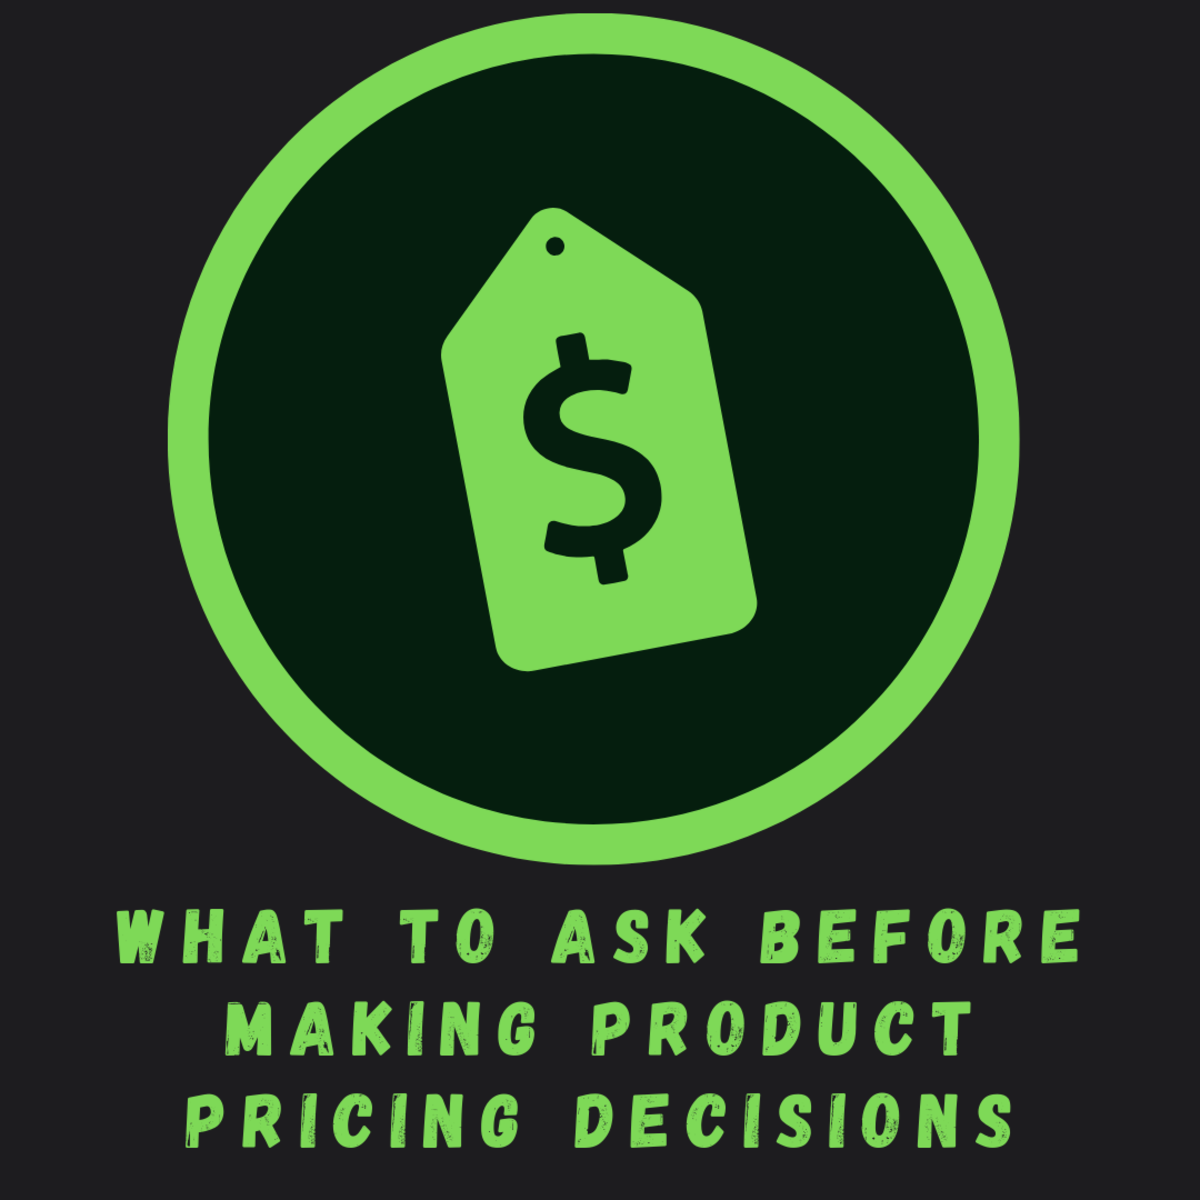 Pricing can be complicated. Read on to learn how to do it right.